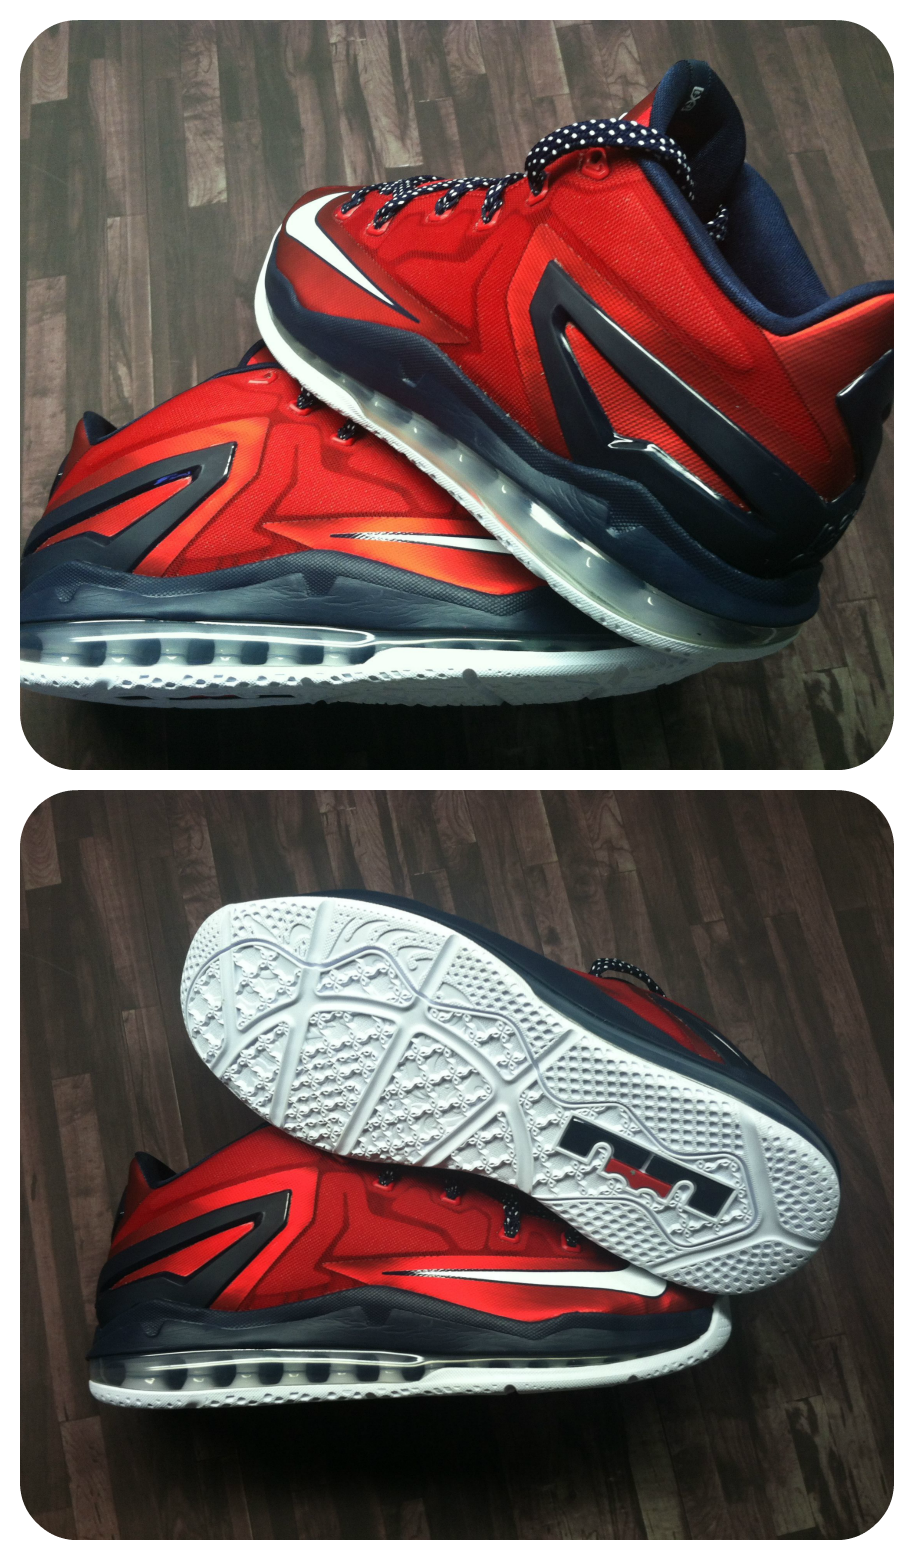 The Nike Air Max LeBron XI Low drops tomorrow in this red, white, and blue  colorway.